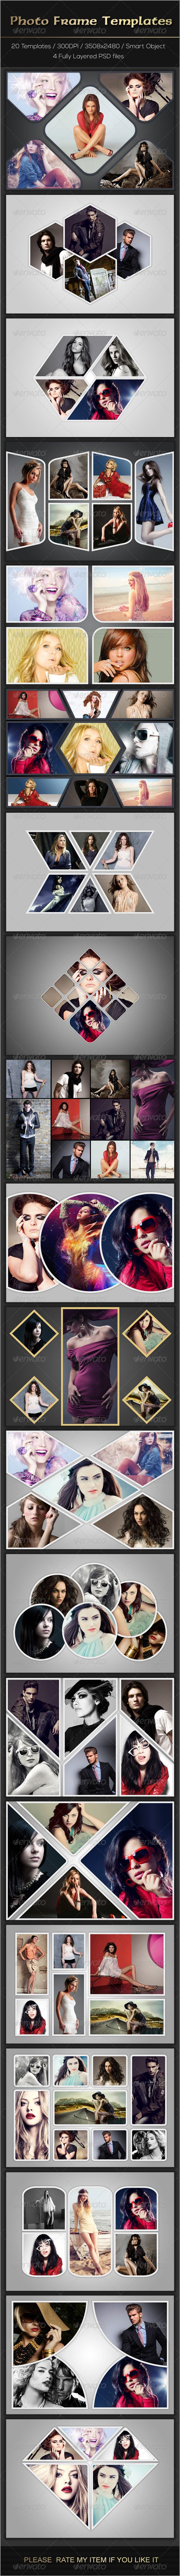 Photo Frame Templates PSD #design Download: http://graphicriver.net/item/photo-frame-templates/7636870?ref=ksioks